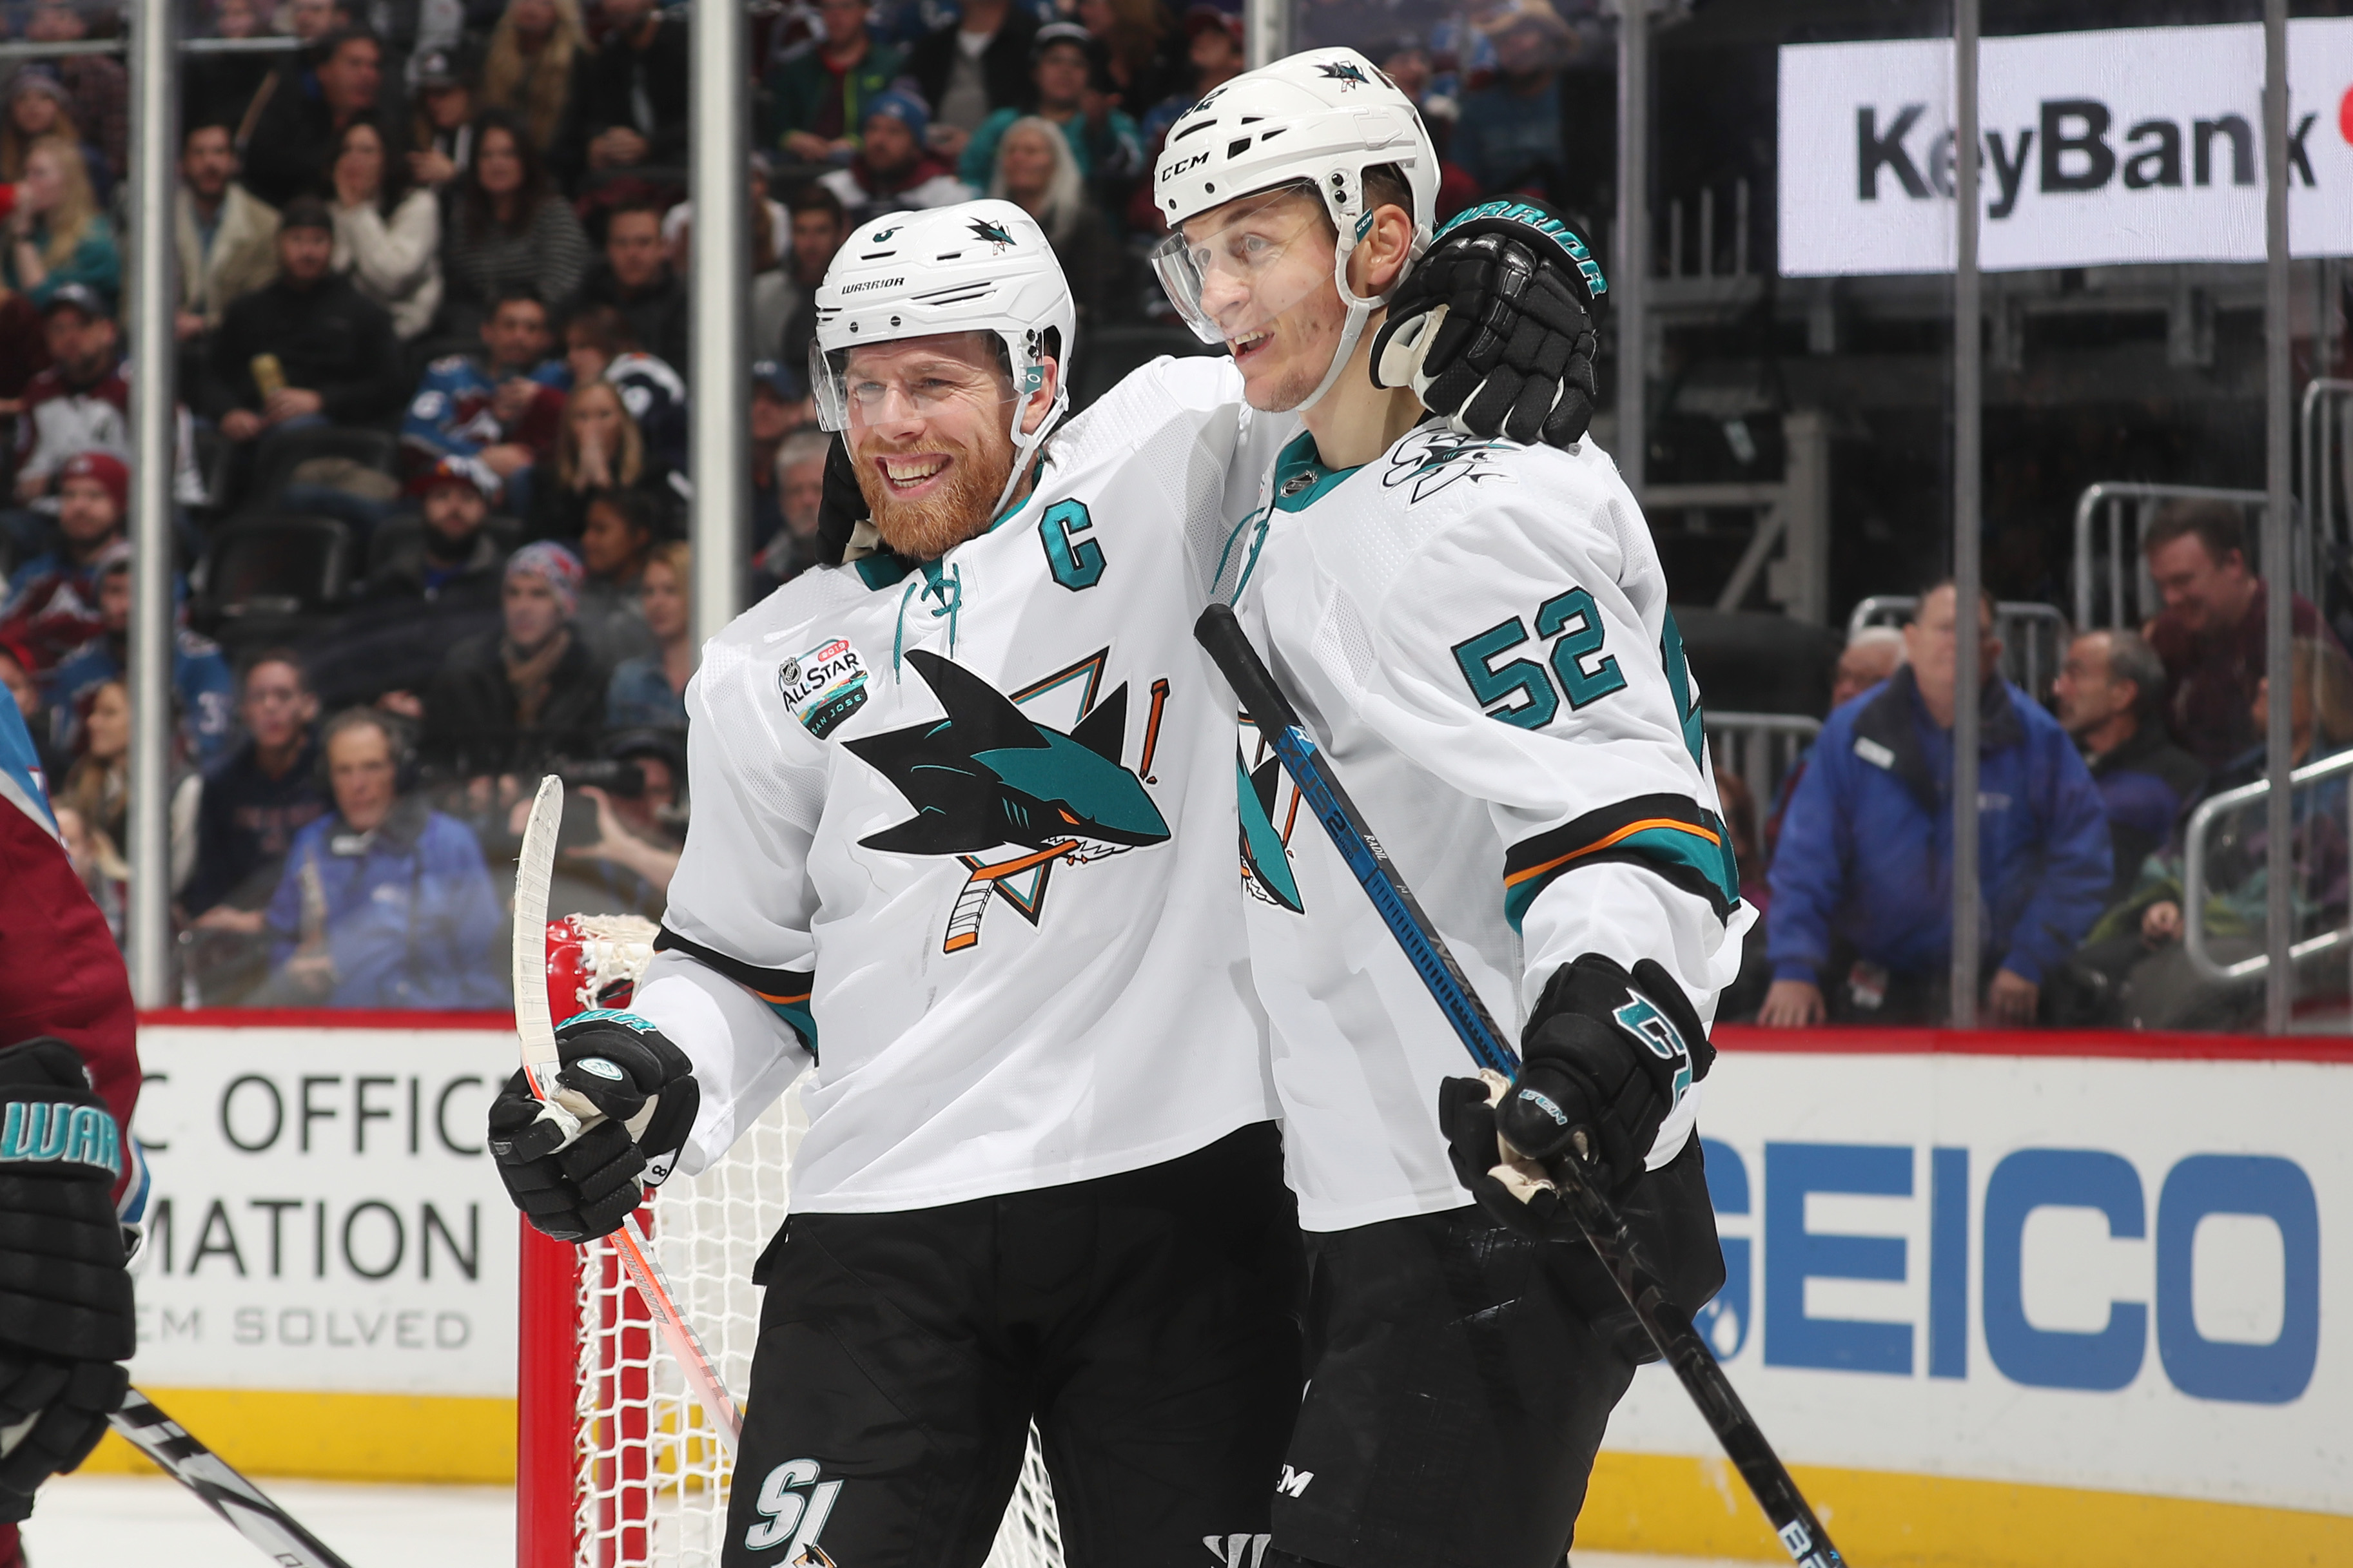 Lukas Radil #52 of the San Jose Sharks celebrates a goal against the Colorado Avalanche with teammate Joe Pavelski #8 at the Pepsi Center on January 2, 2019 in Denver, Colorado.